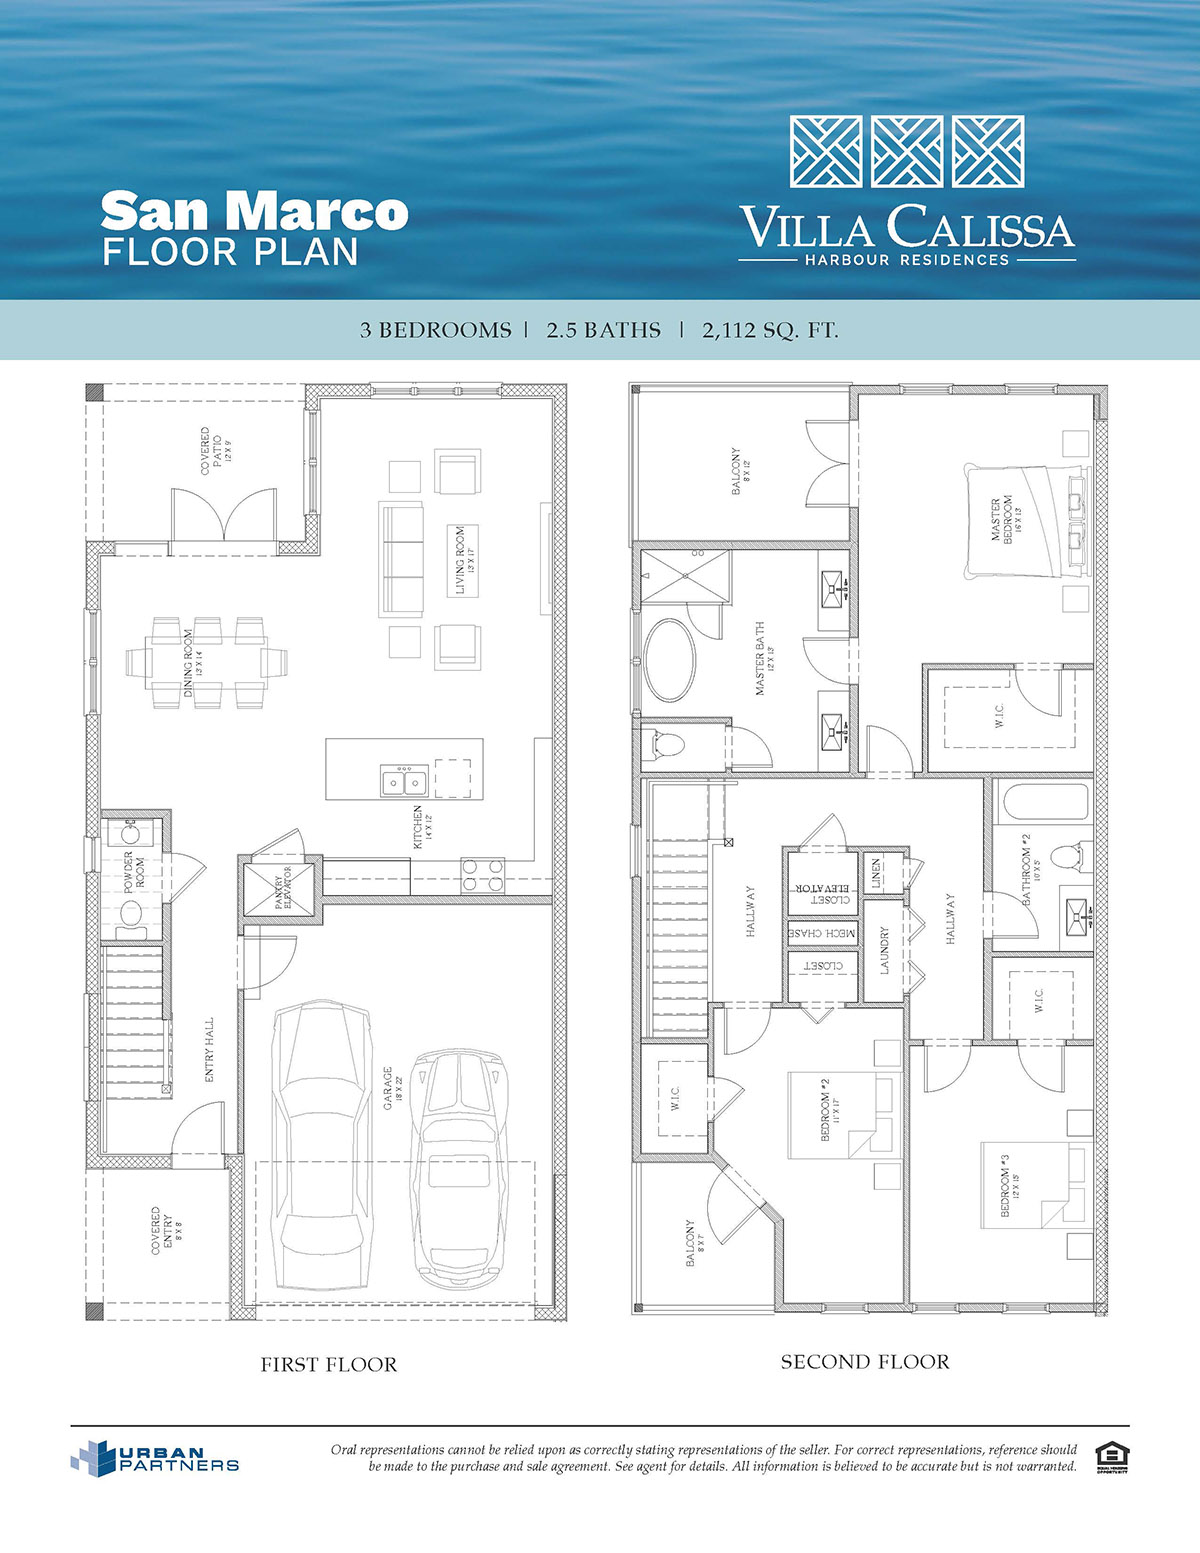 San Marco floor plan at Villa Calissa